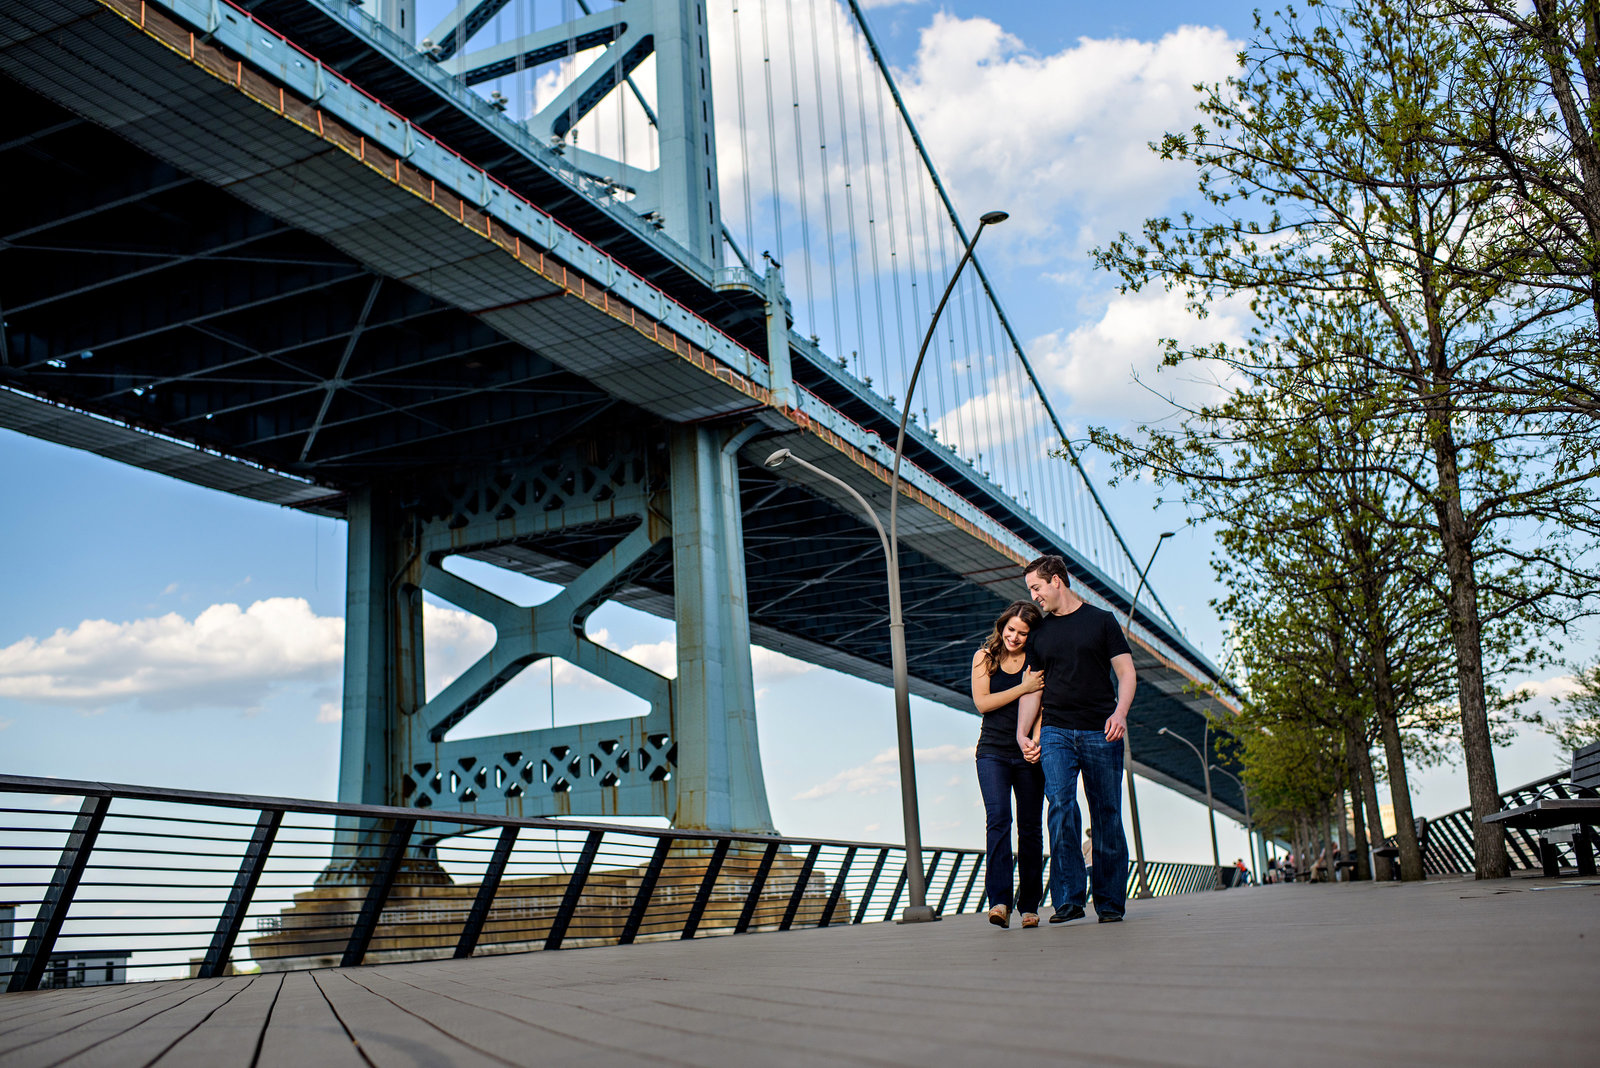 A happy couple walk along race street pier with ben franklin bridge behind them.